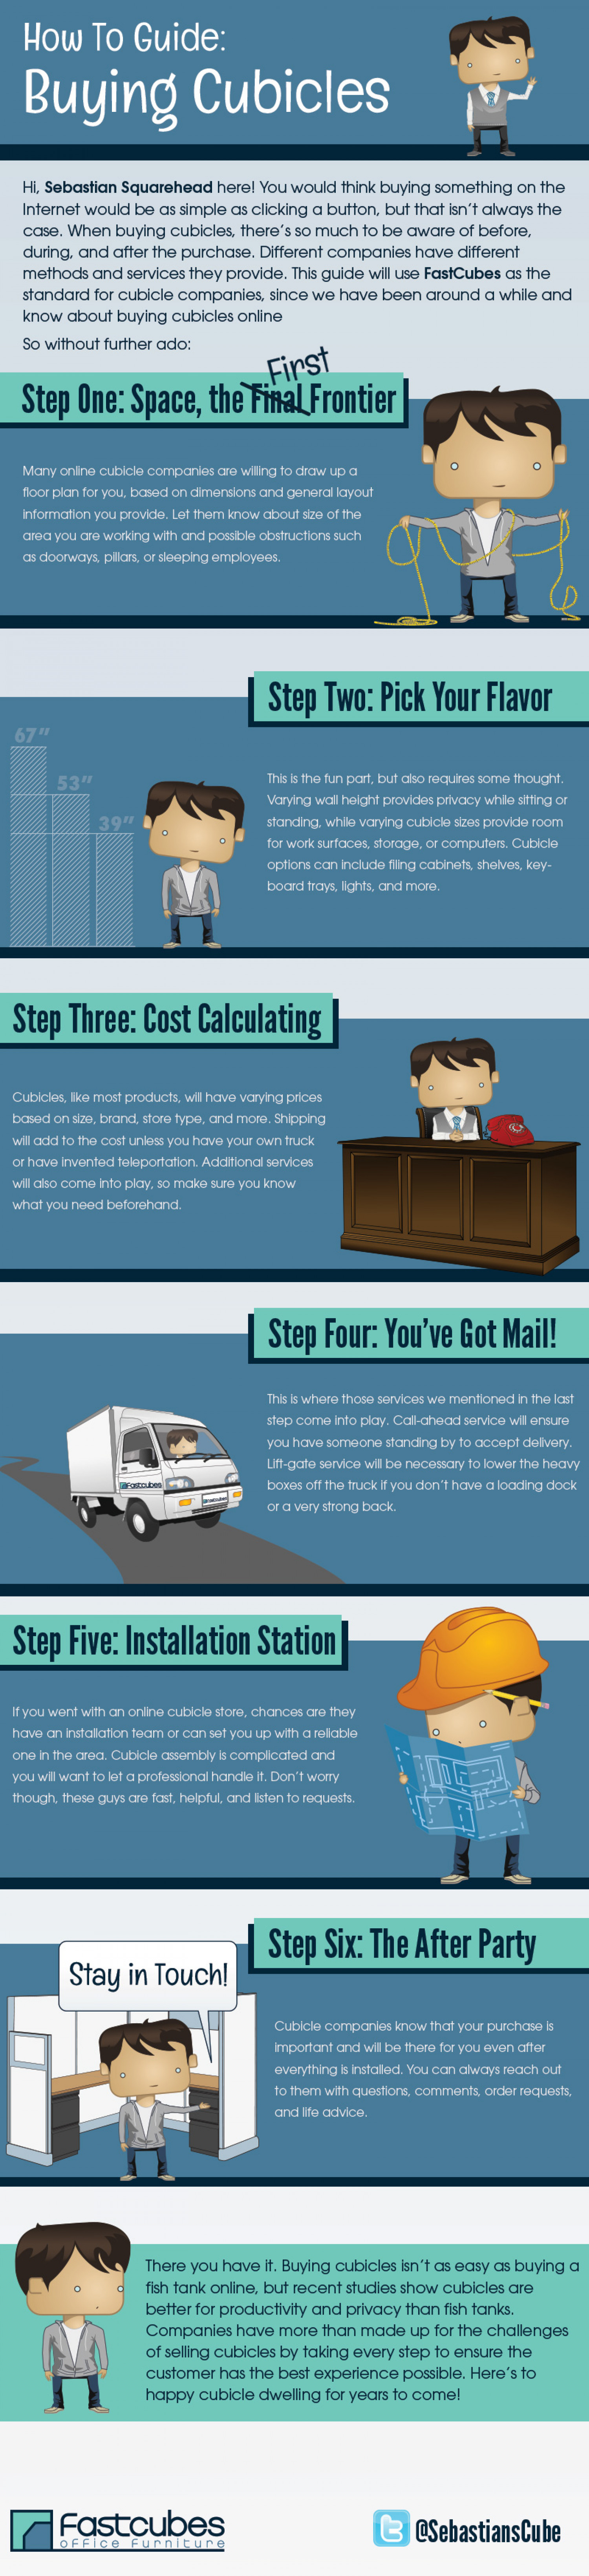 How To Guide: Buying Cubicles Infographic